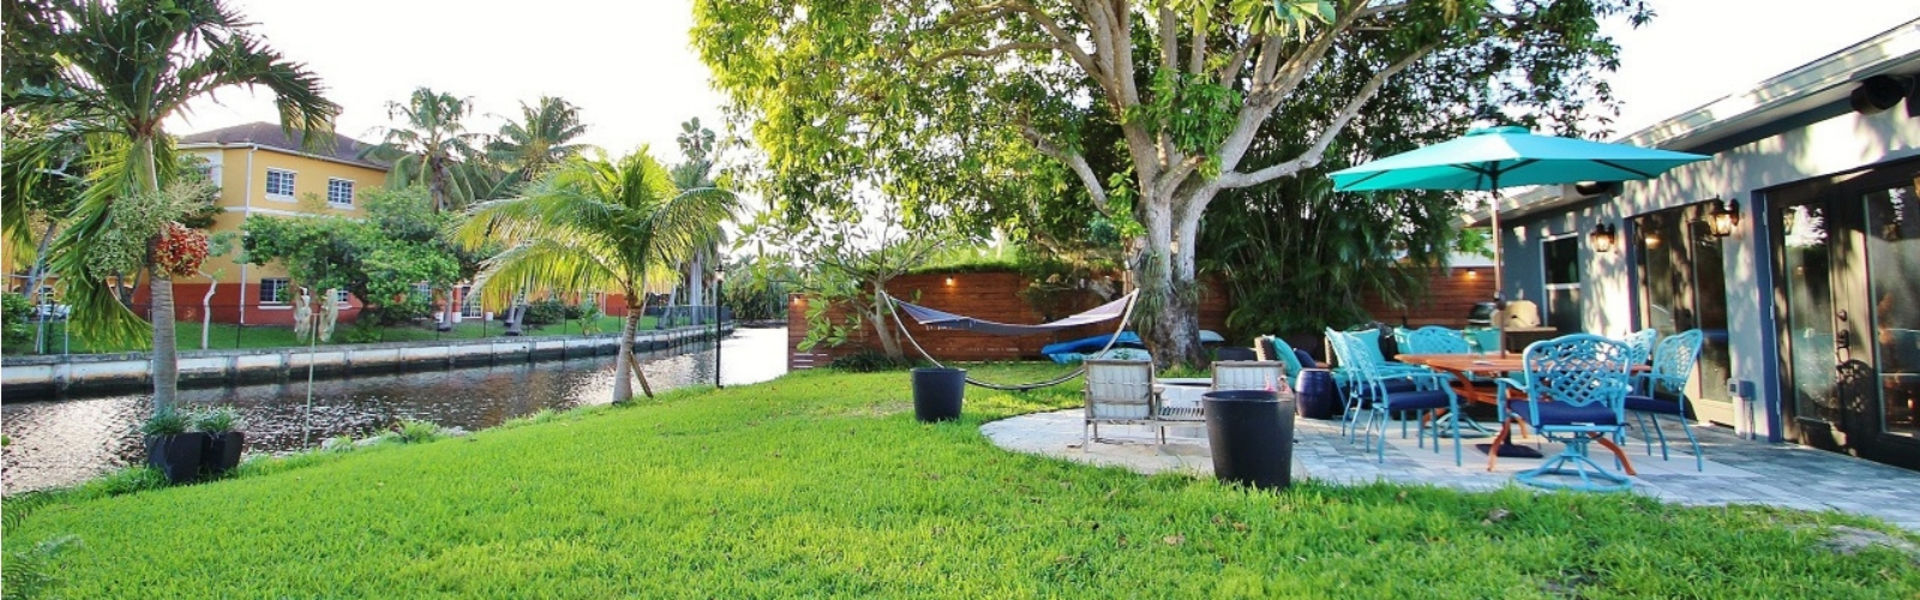 WILTON MANORS 3 BEDROOM / 3 BATHROOM, TOTALLY REMODELED, WATERFRONT HOME FOR SALE